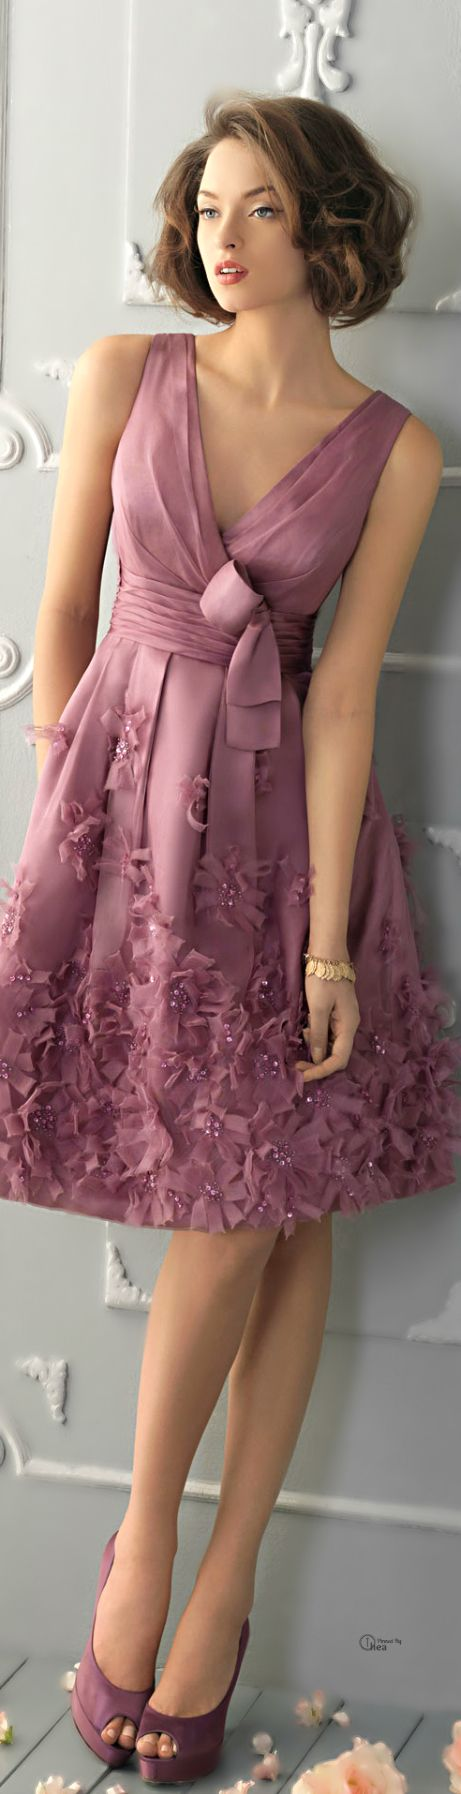 best black tie images on pinterest classy dress evening gowns